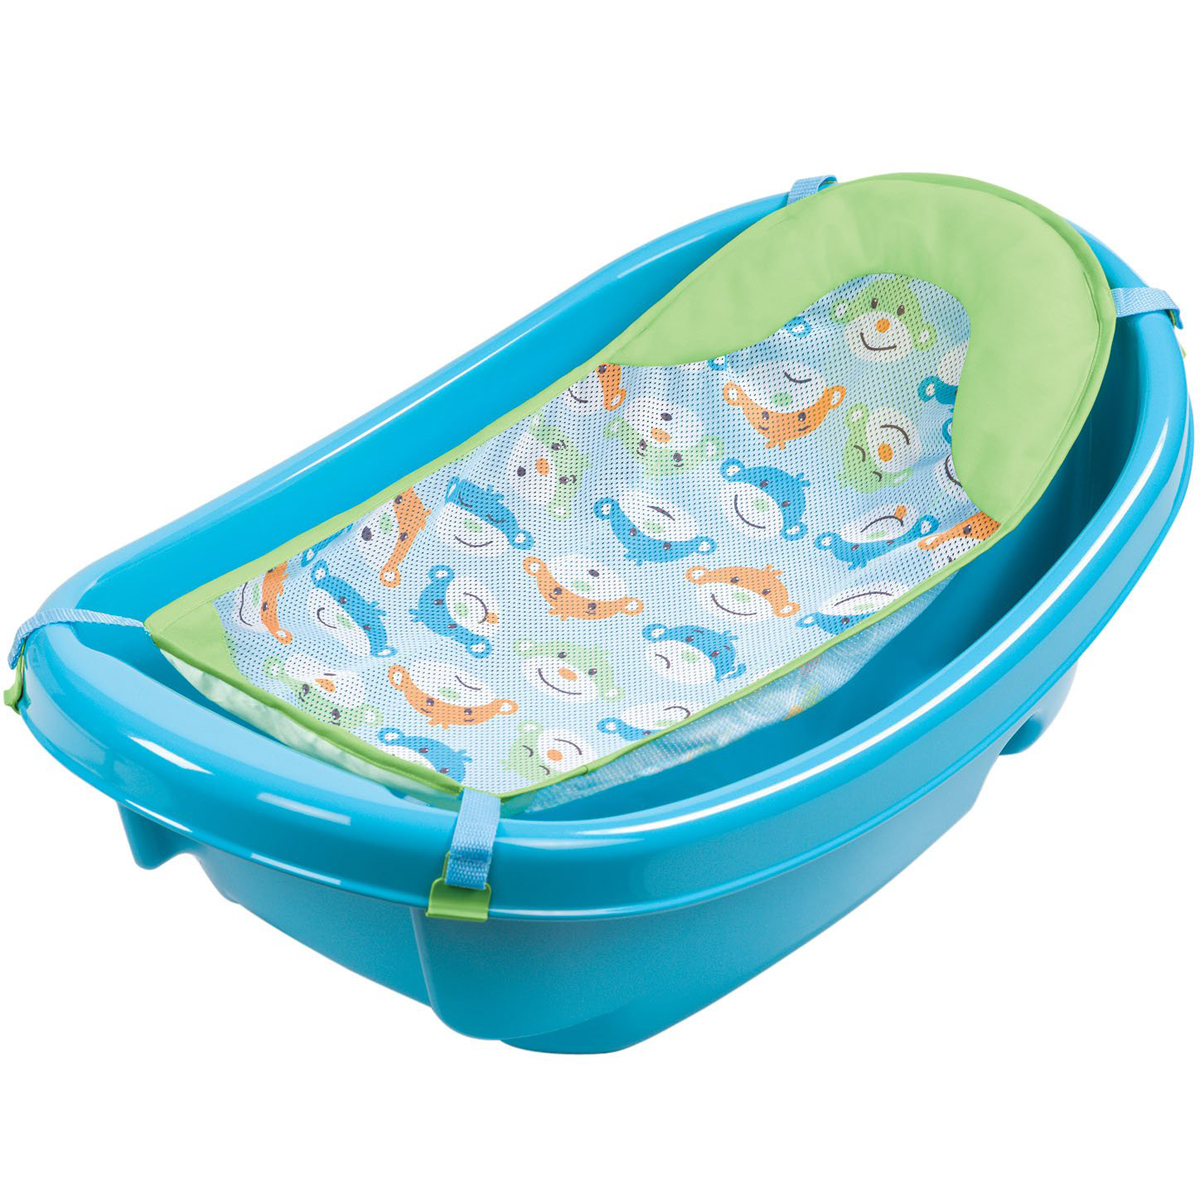 Chau tam co luoi xanh Summer 18160 - Three Stage Baby Tub